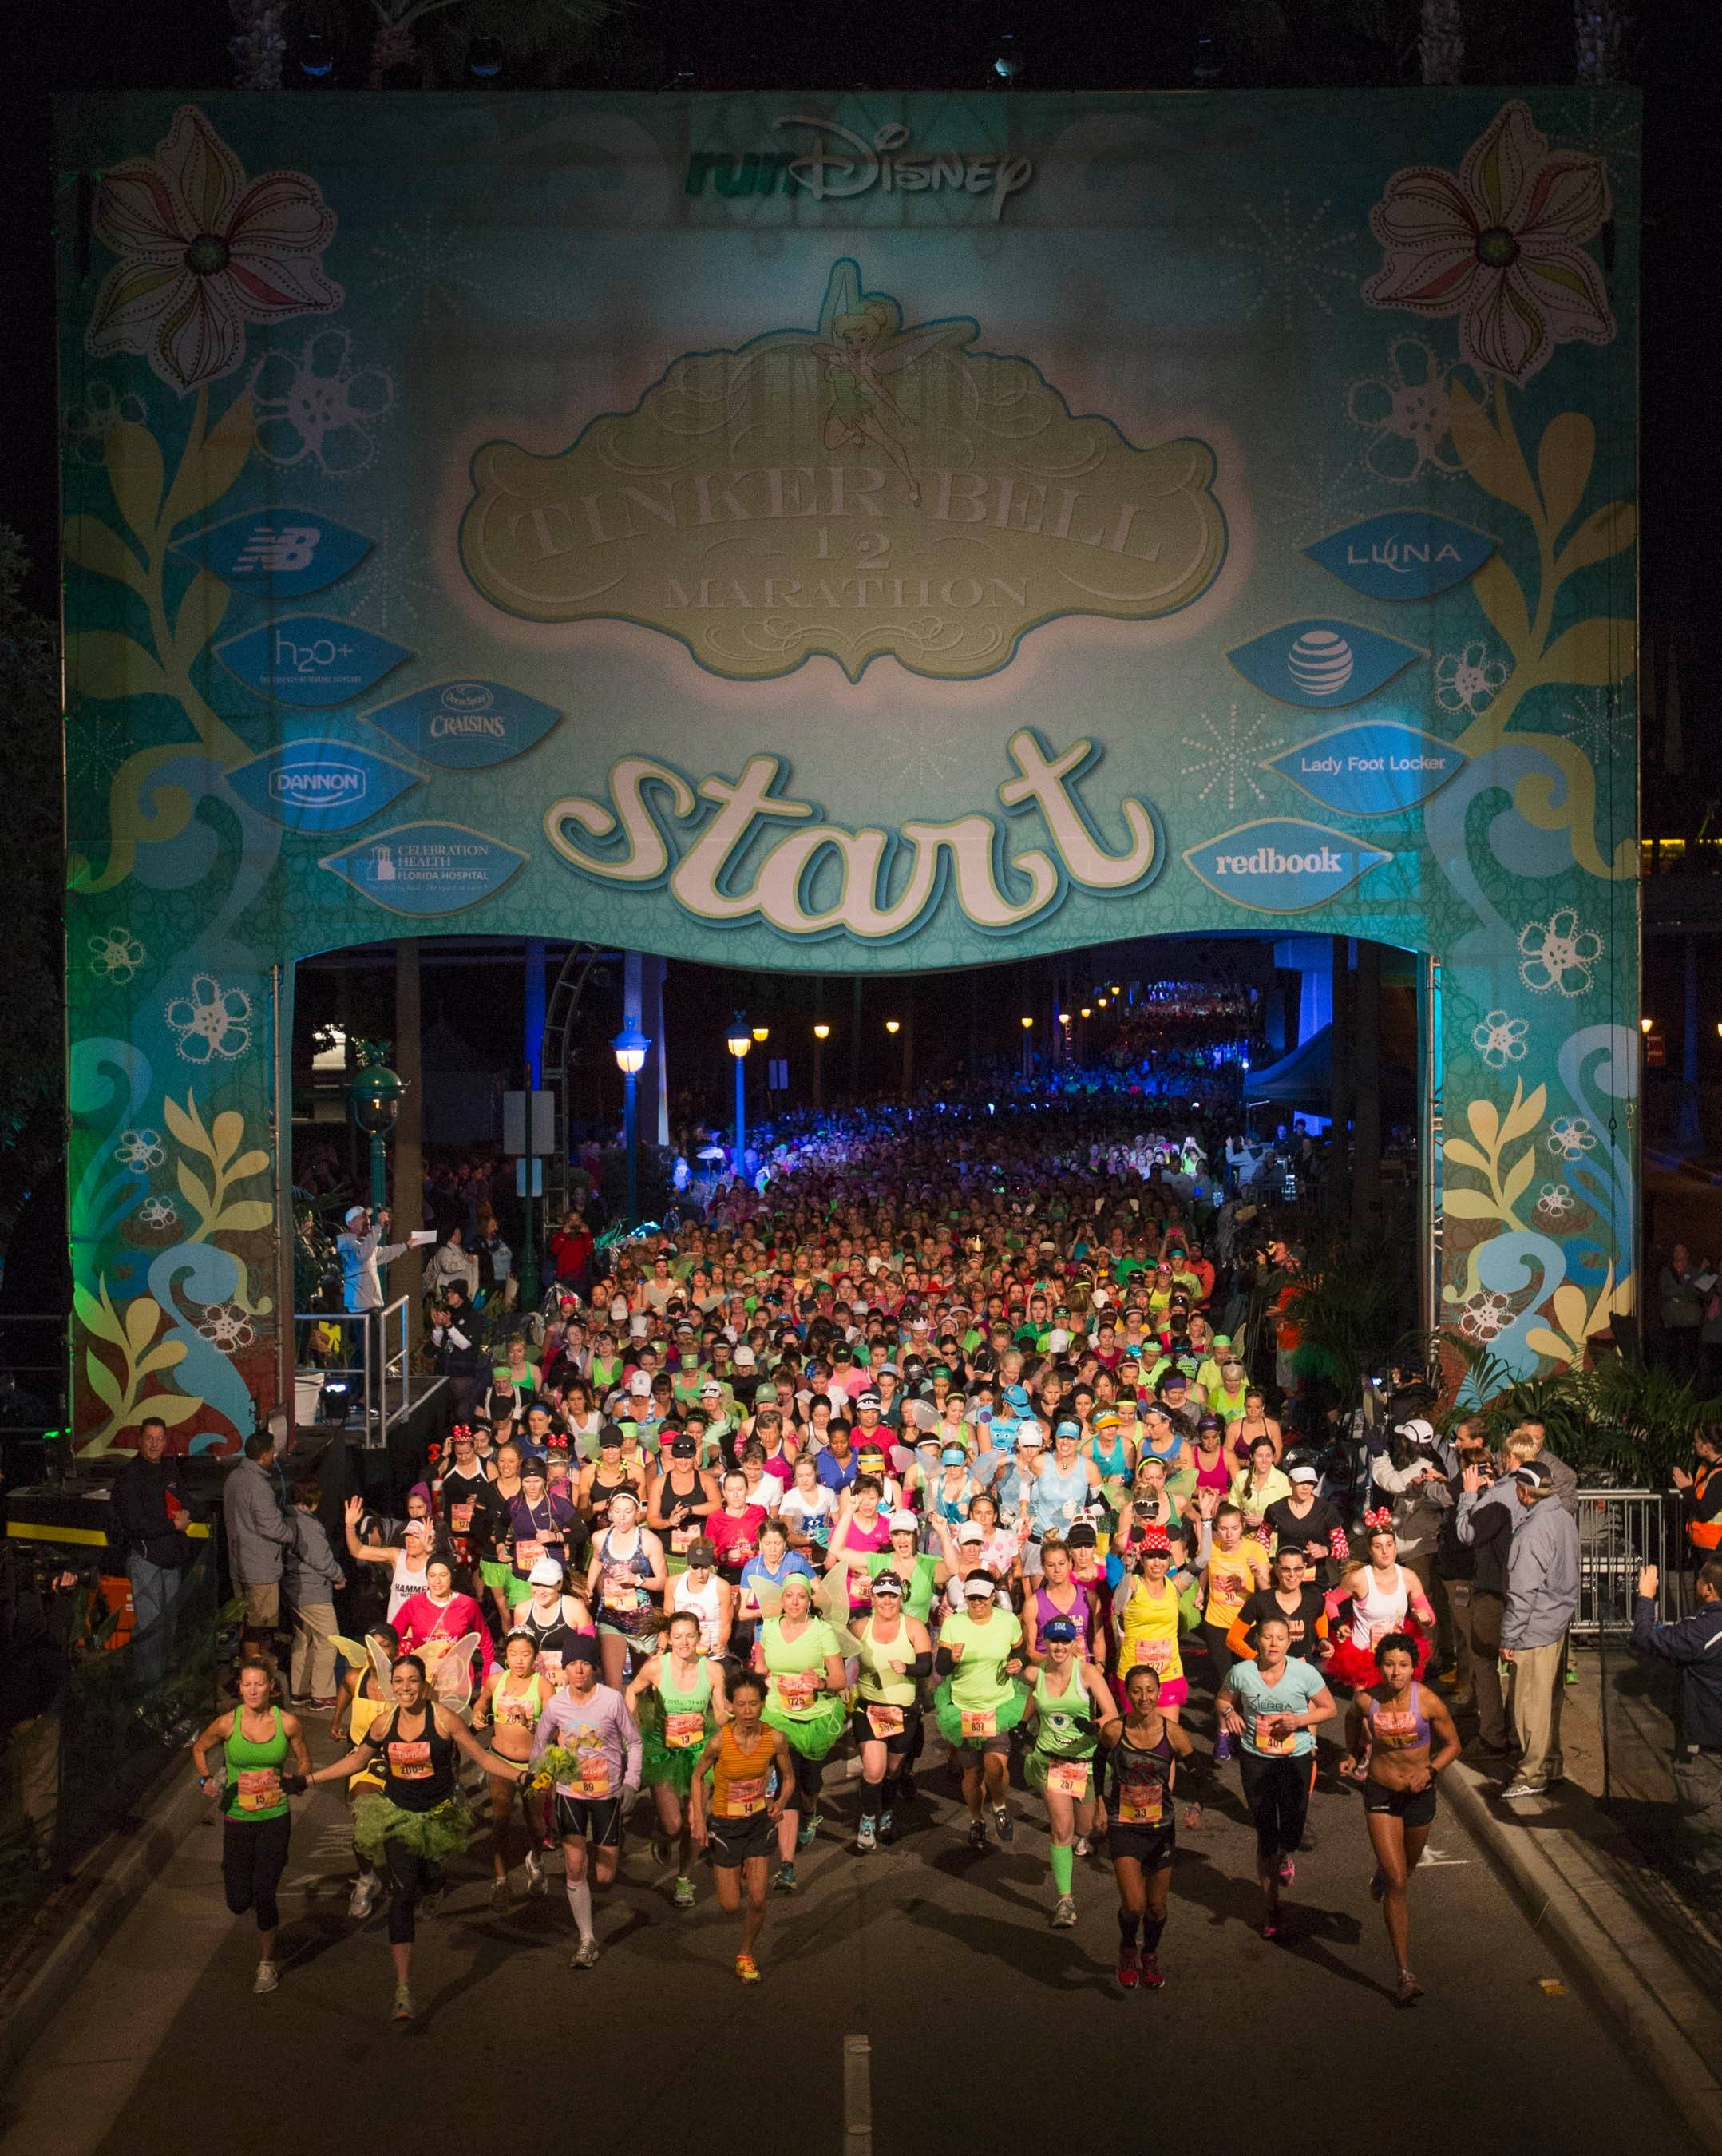 January's 2014 Tinkerbell Half Marathon kicks off at Disneyland Resort in Anaheim, Calif.